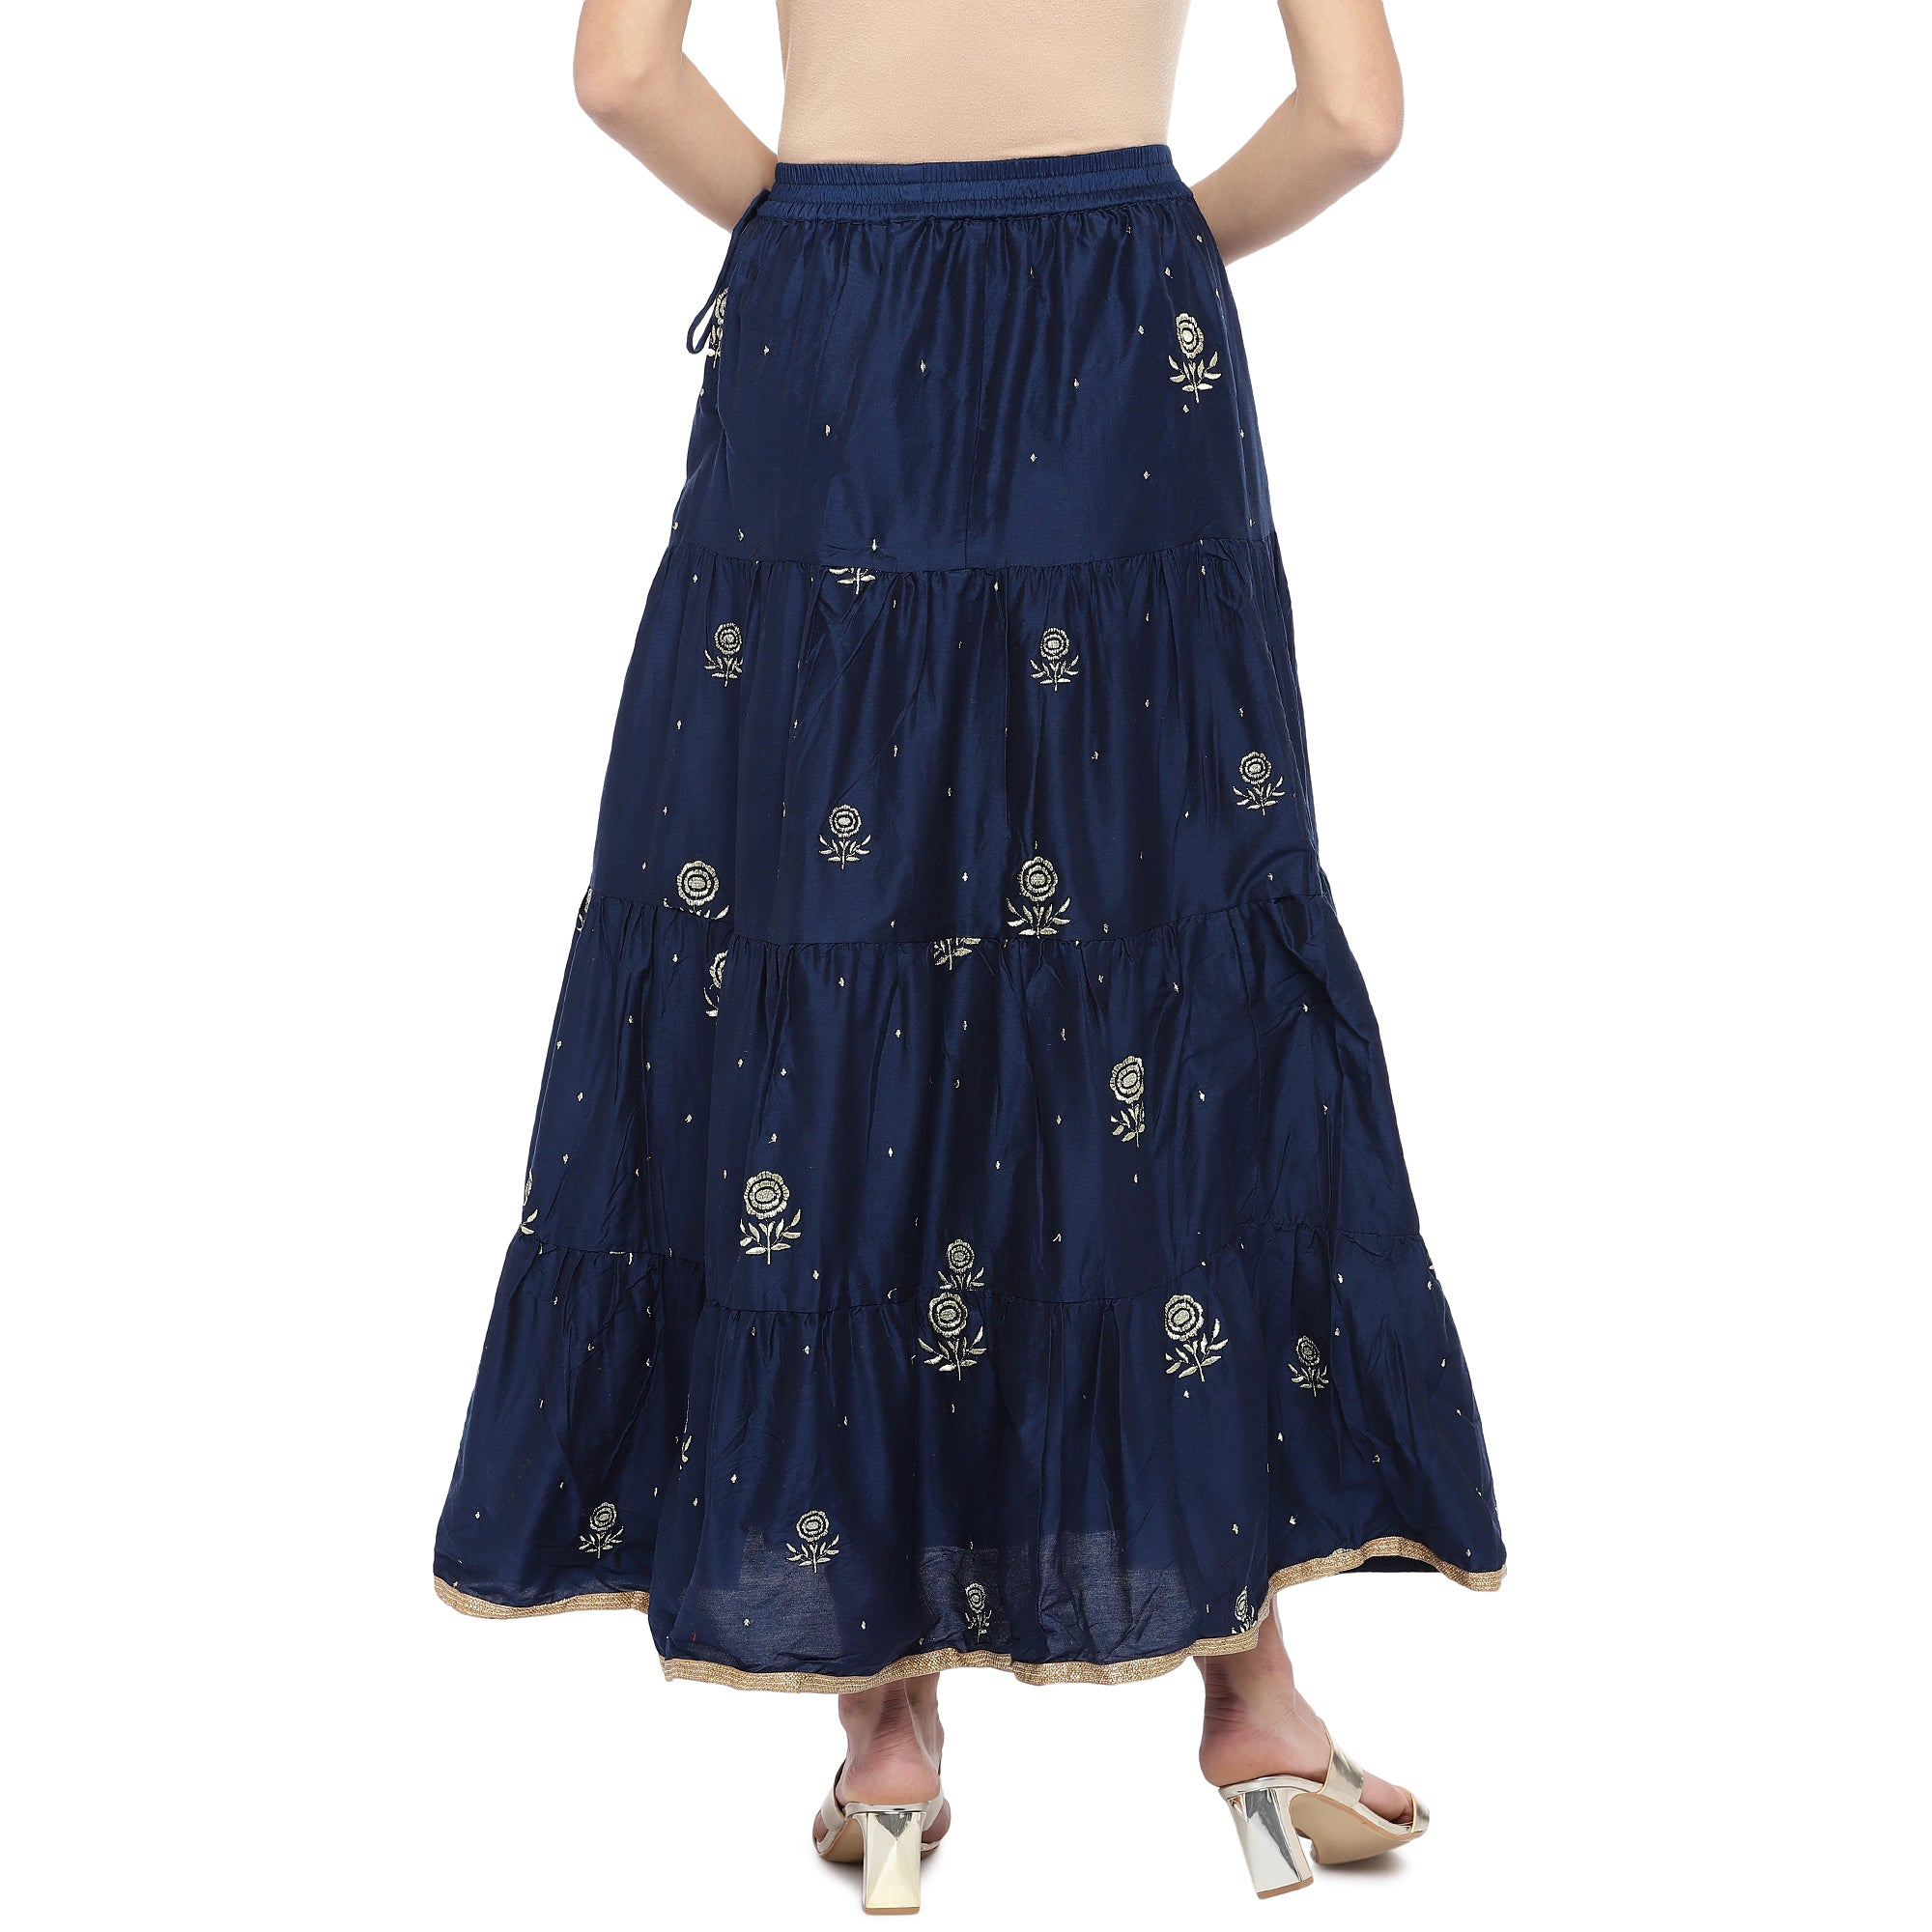 Navy Blue Embroidered Flared Maxi Ethnic Skirt-3